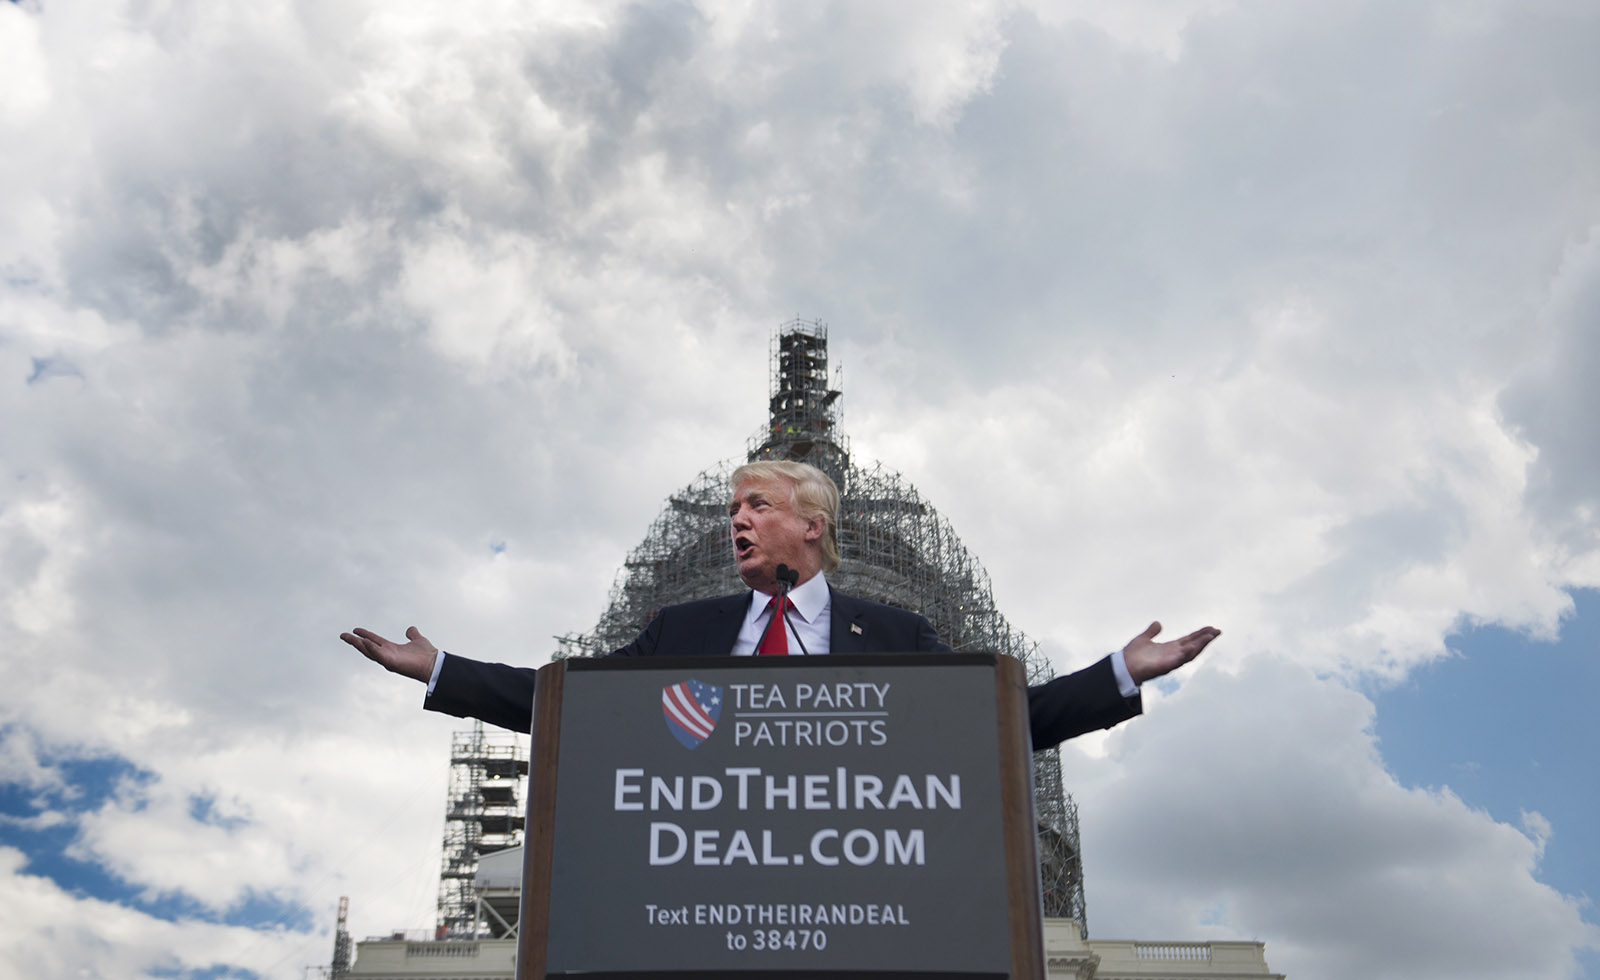 Donald Trump speaking at a protest in front of the Capitol in Washington, D.C., September 9, 2015